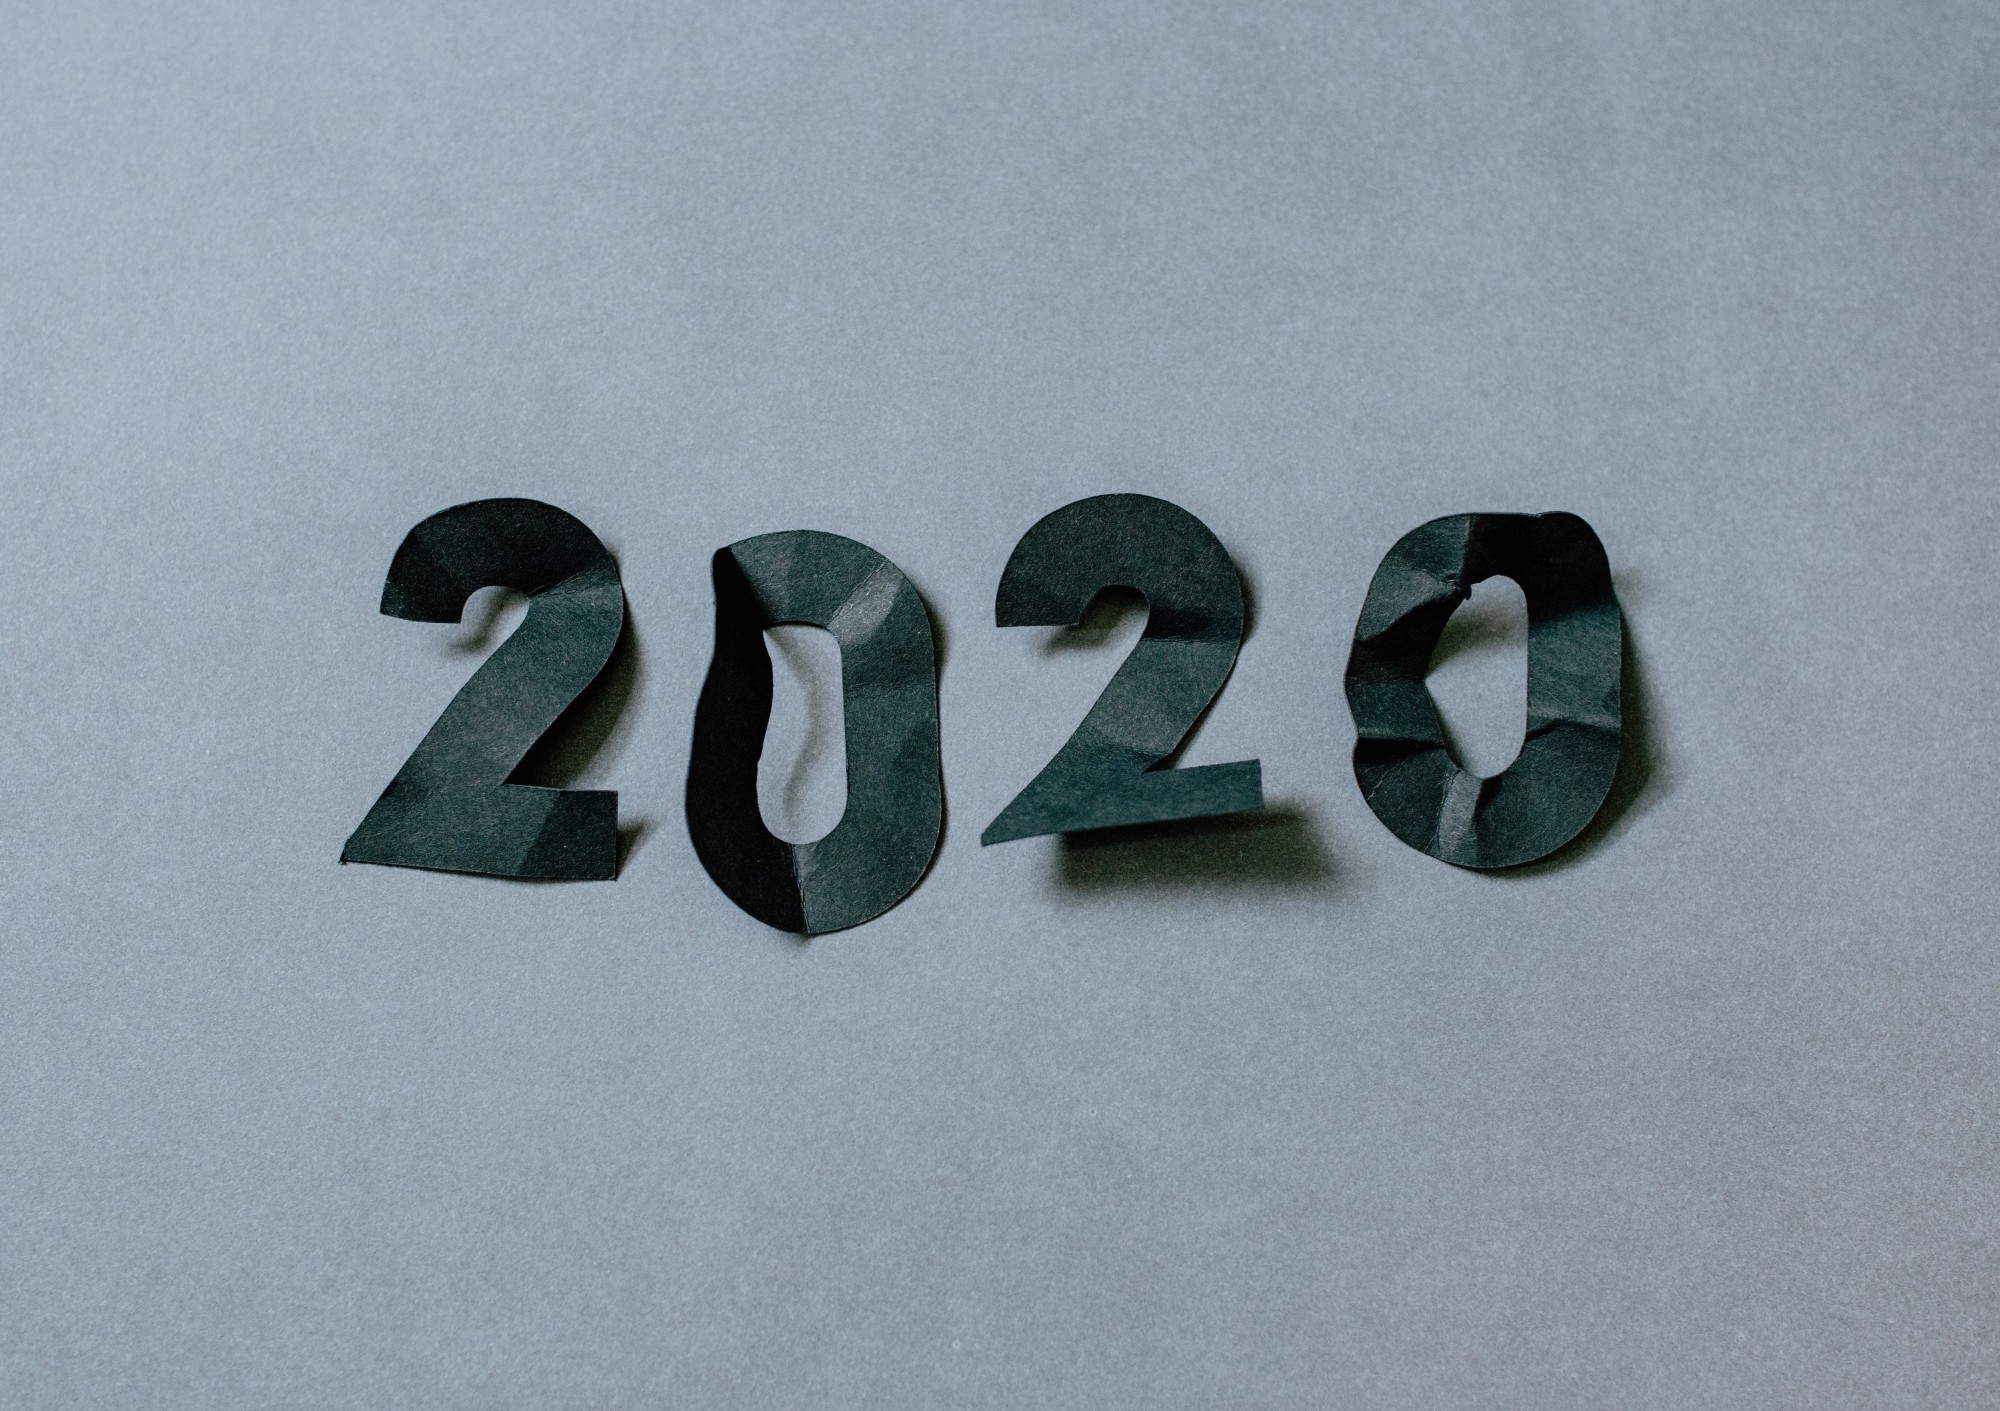 2020 numbers in crinckled paper cut-out